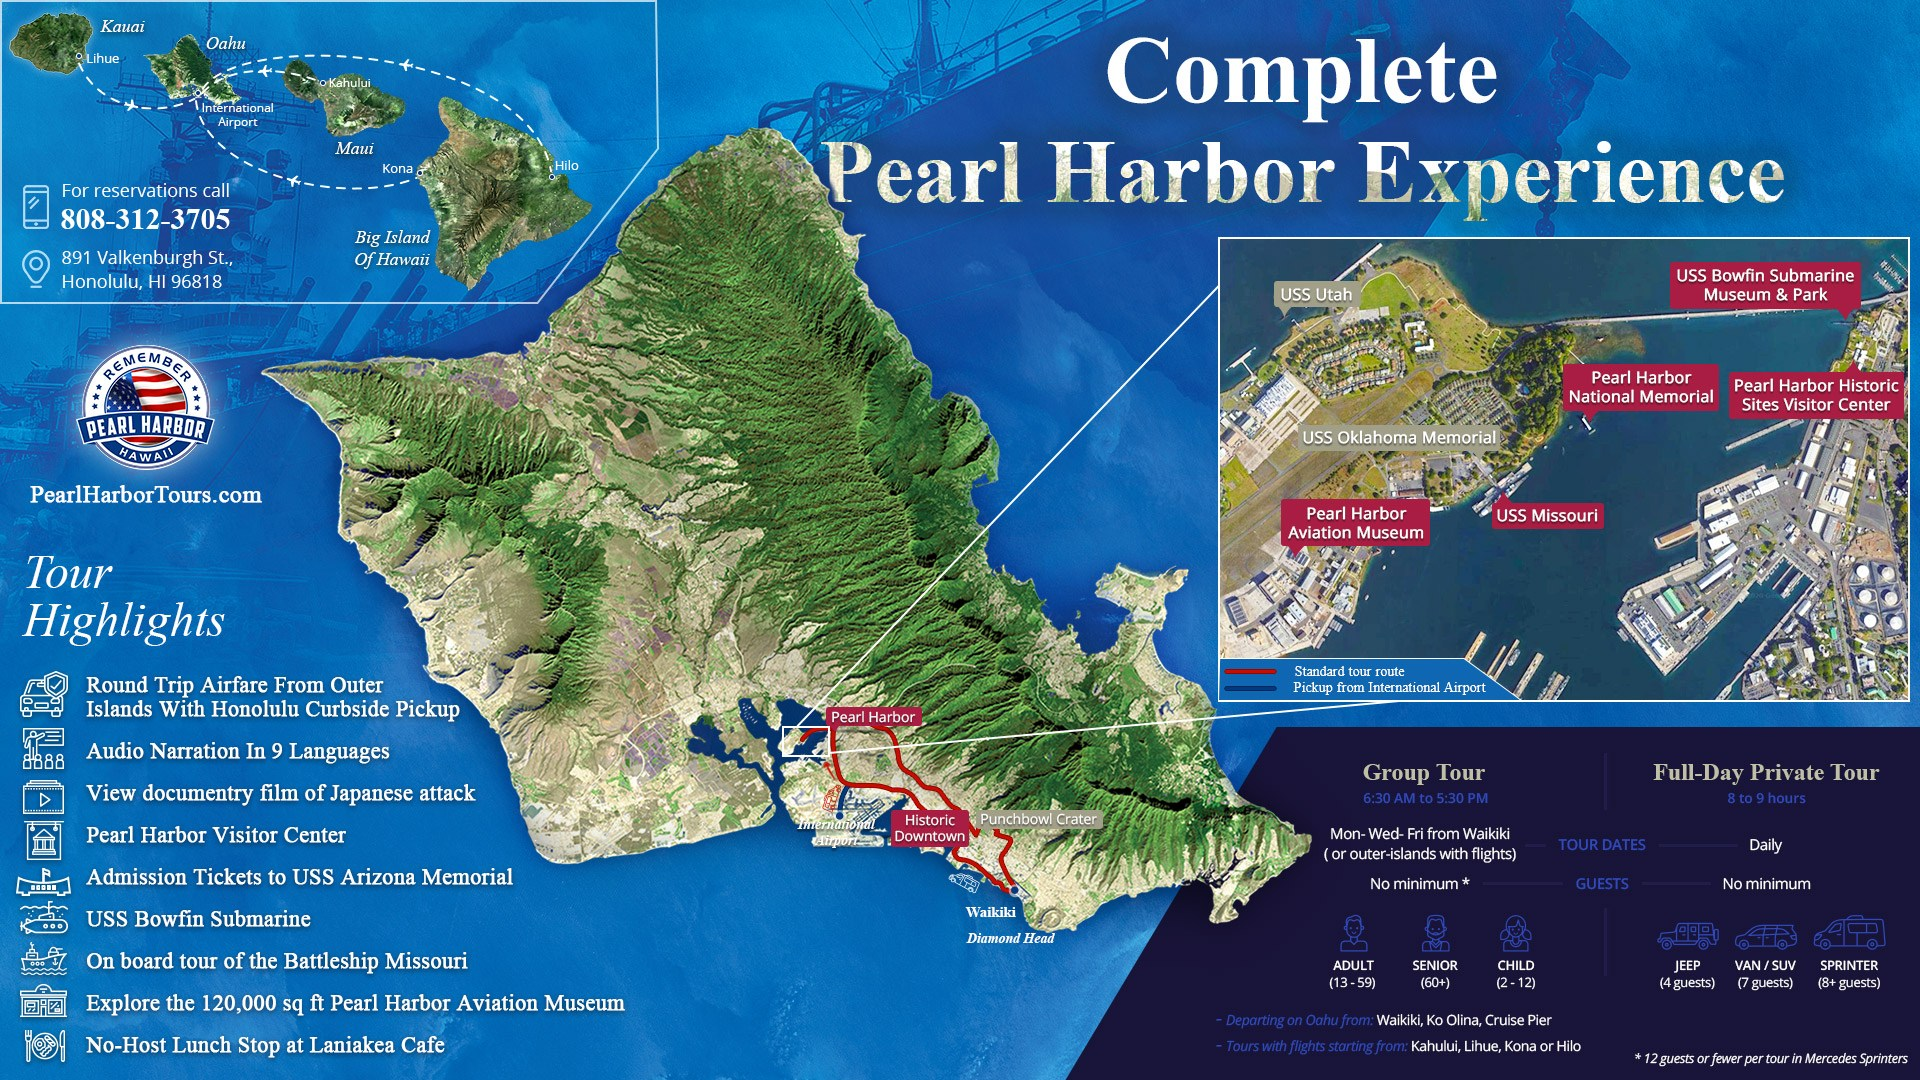 Complete Pearl Harbor Experience From Maui Kauai or Big Island Map